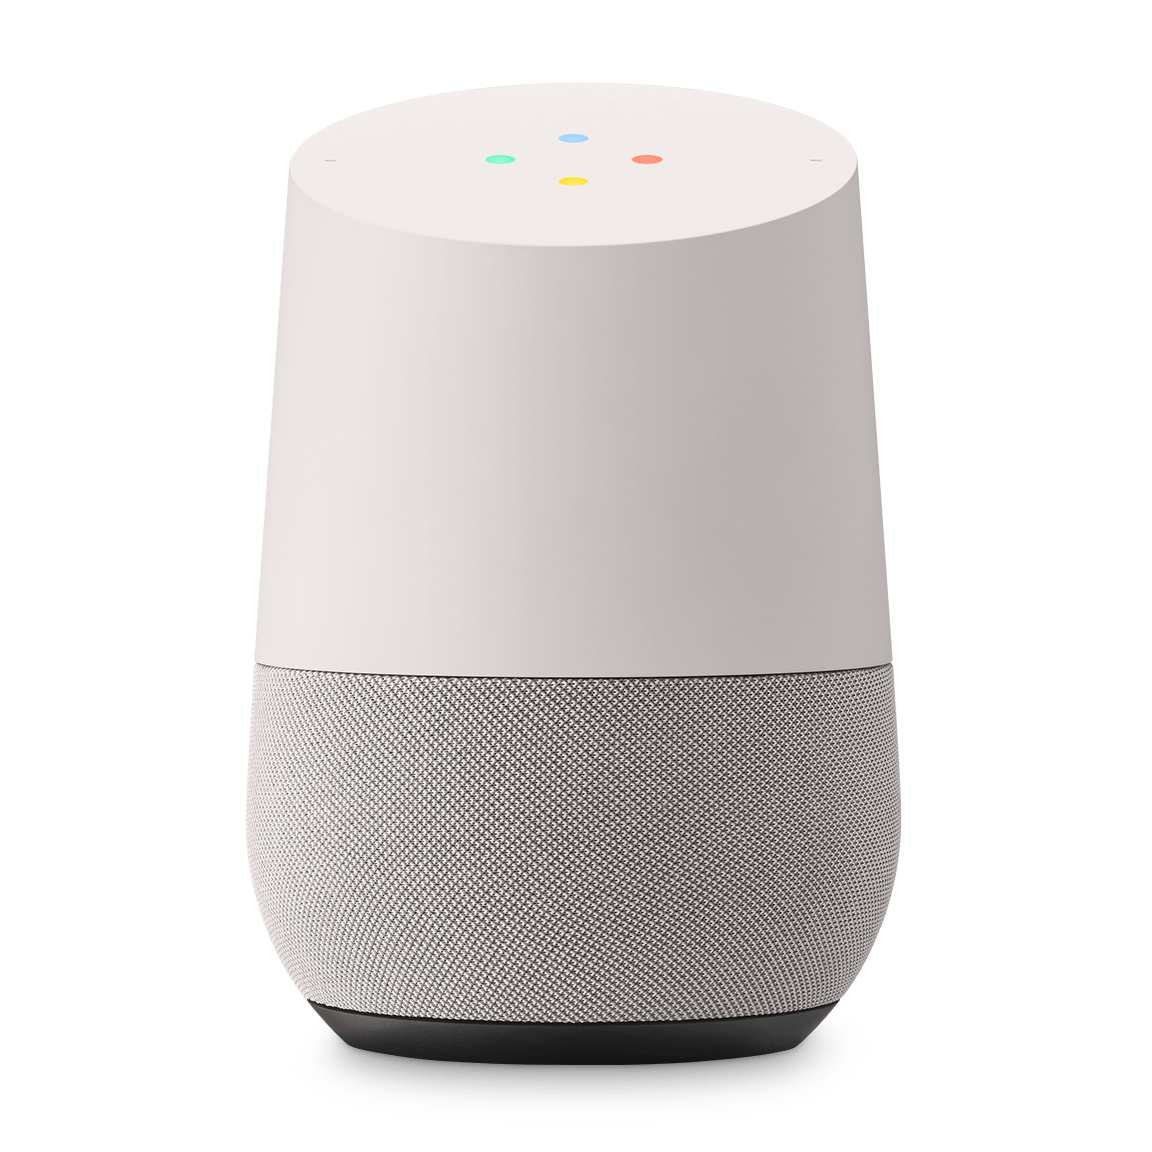 Google home png. Transparent stickpng download